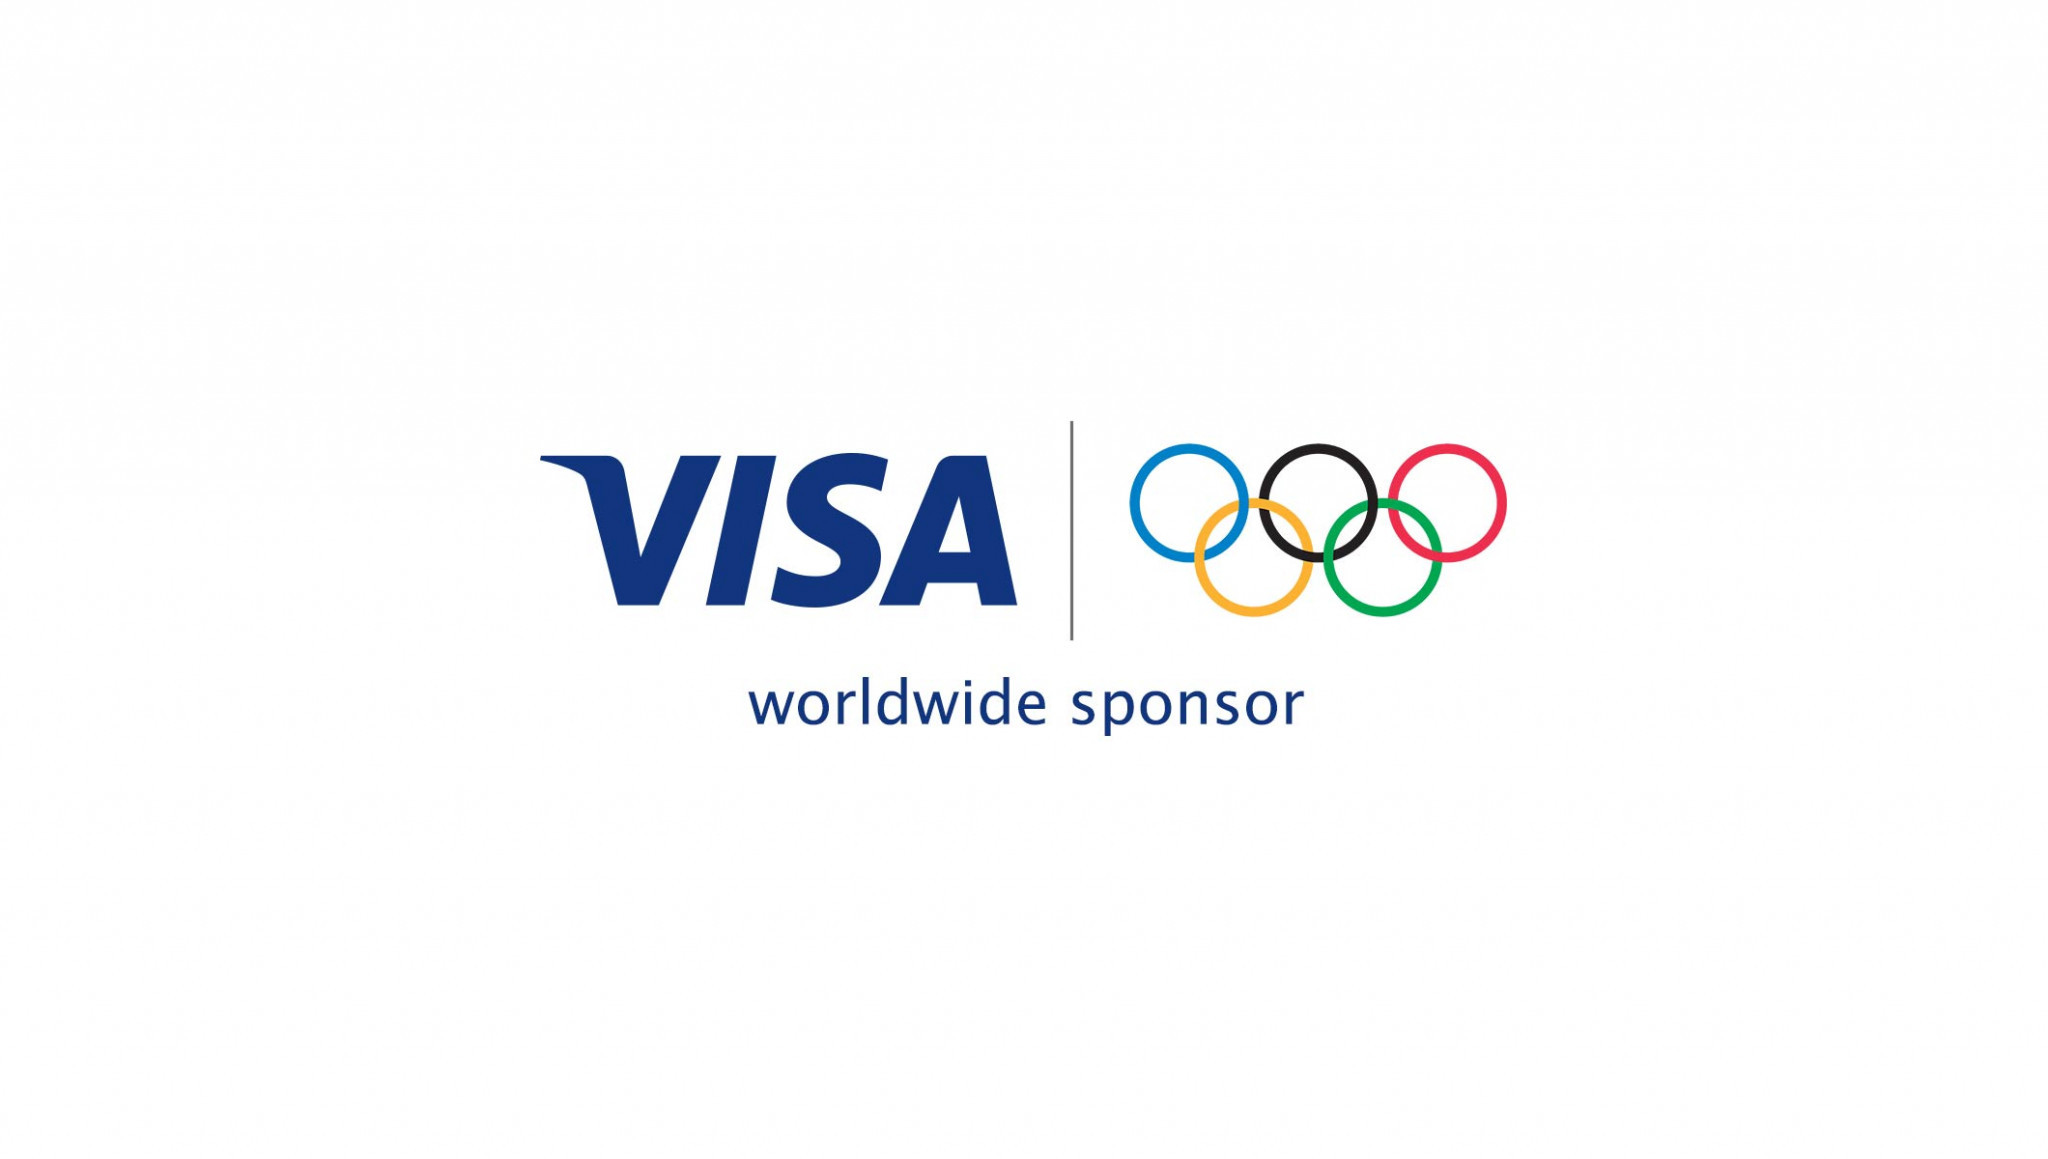 Financial giant Visa will remain an official partner of the Olympic Games until 2032 ©IOC